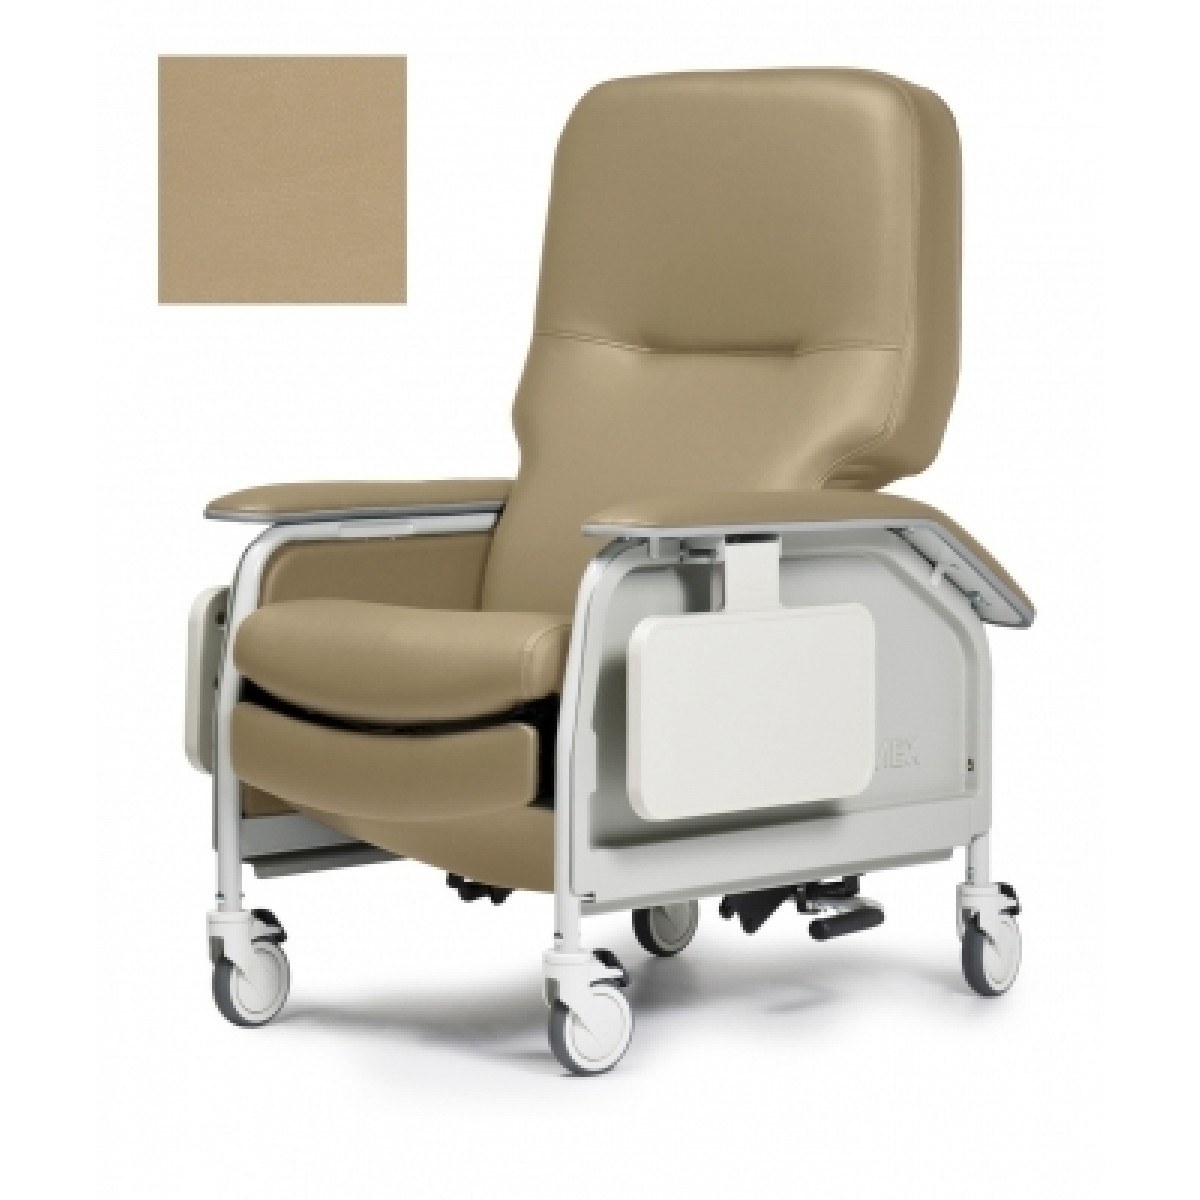 invacare clinical recliner geri chair office chairs for sciatica lumex 566g deluxe care1recliner